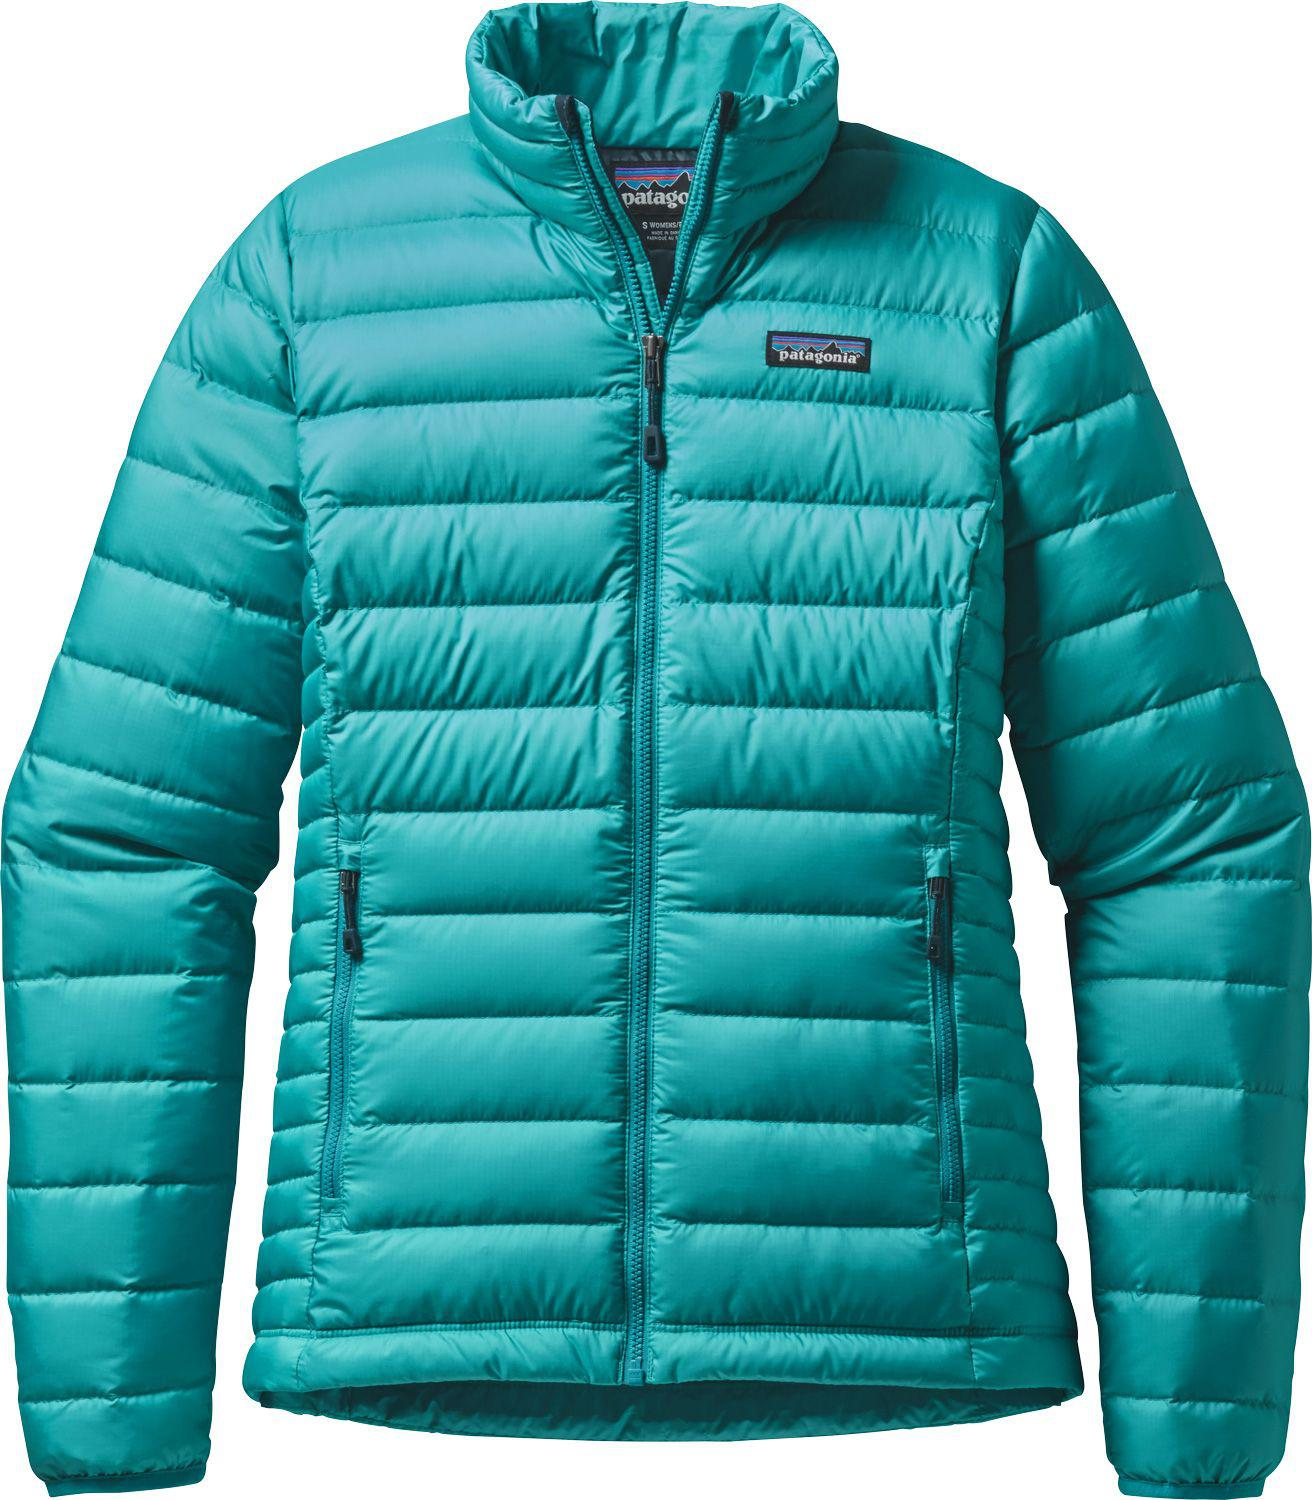 4ab427e51ebc Lyst - Patagonia Down Sweater Jacket in Blue